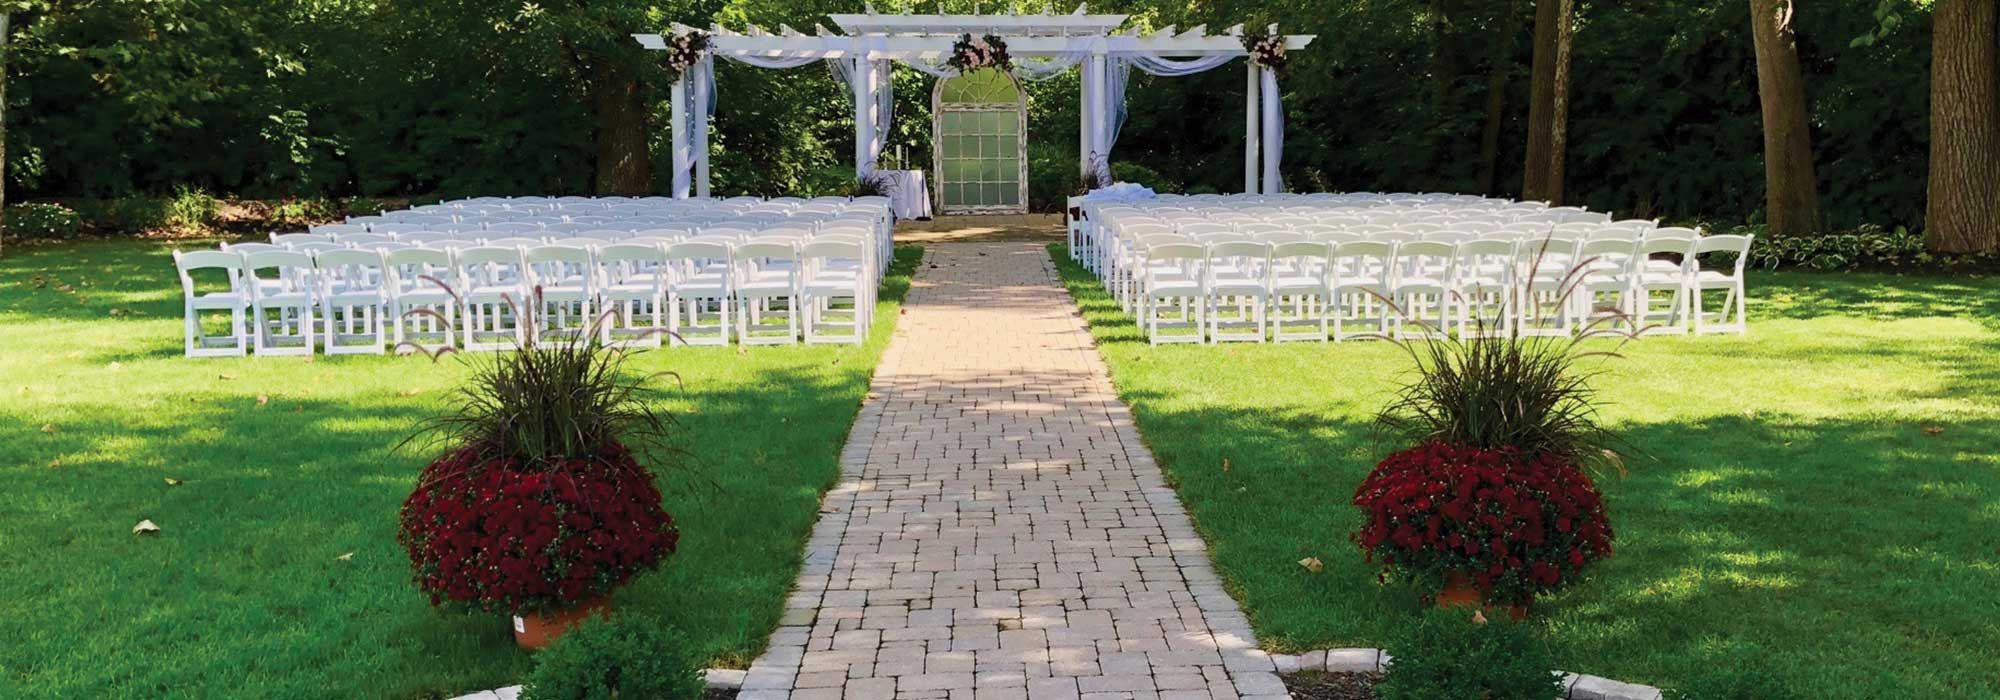 An Outdoor Wedding Ceremony at the South Garden at The Willows in Indianapolis